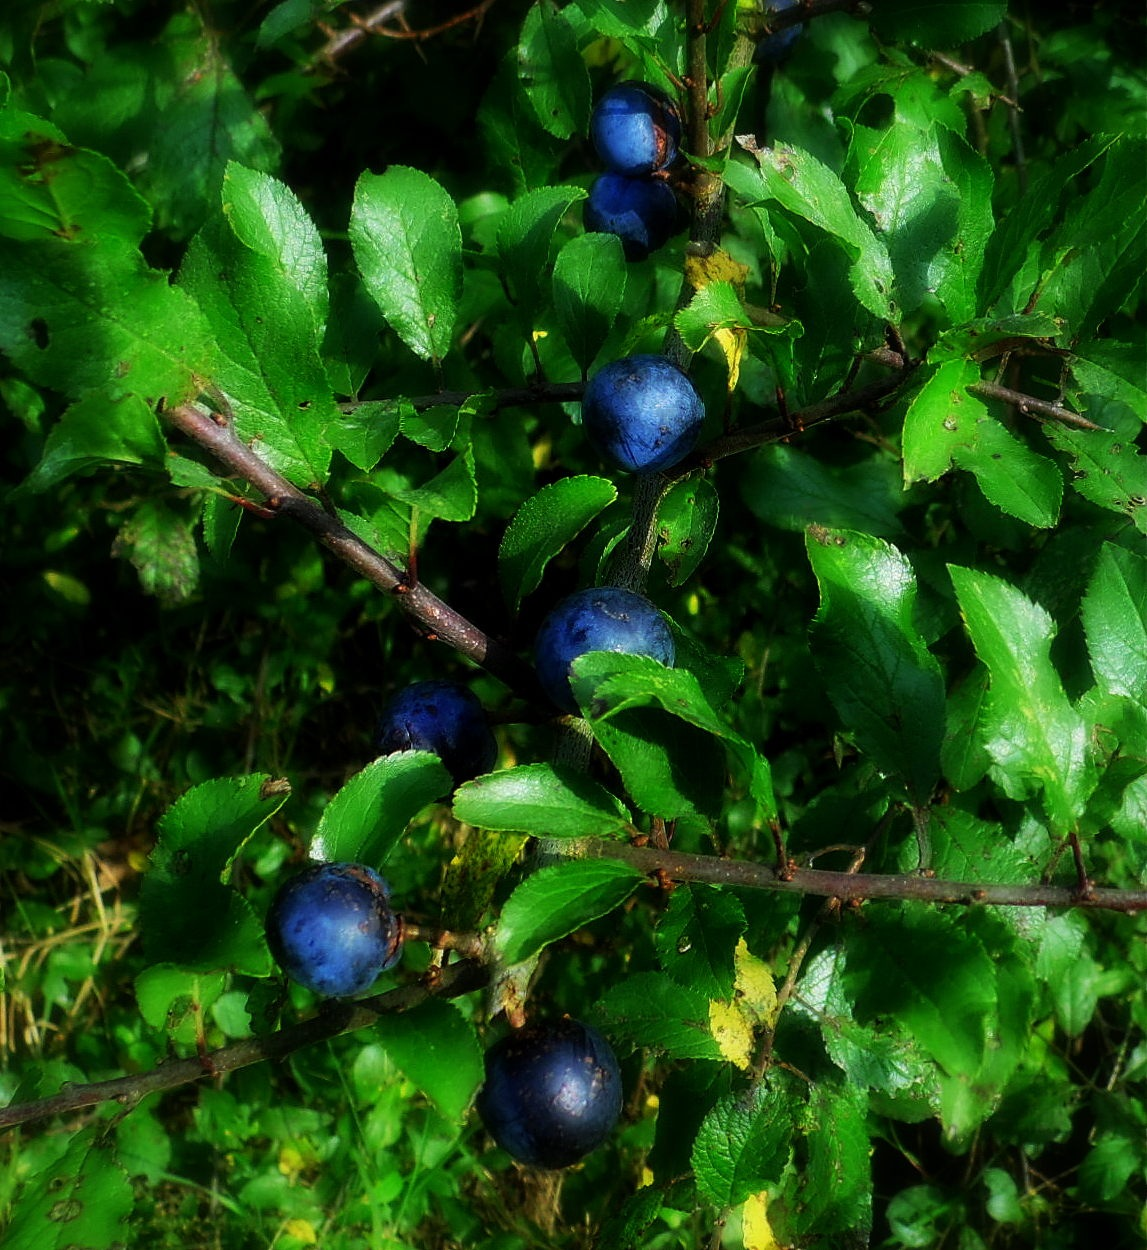 Blue Berry by shelley22